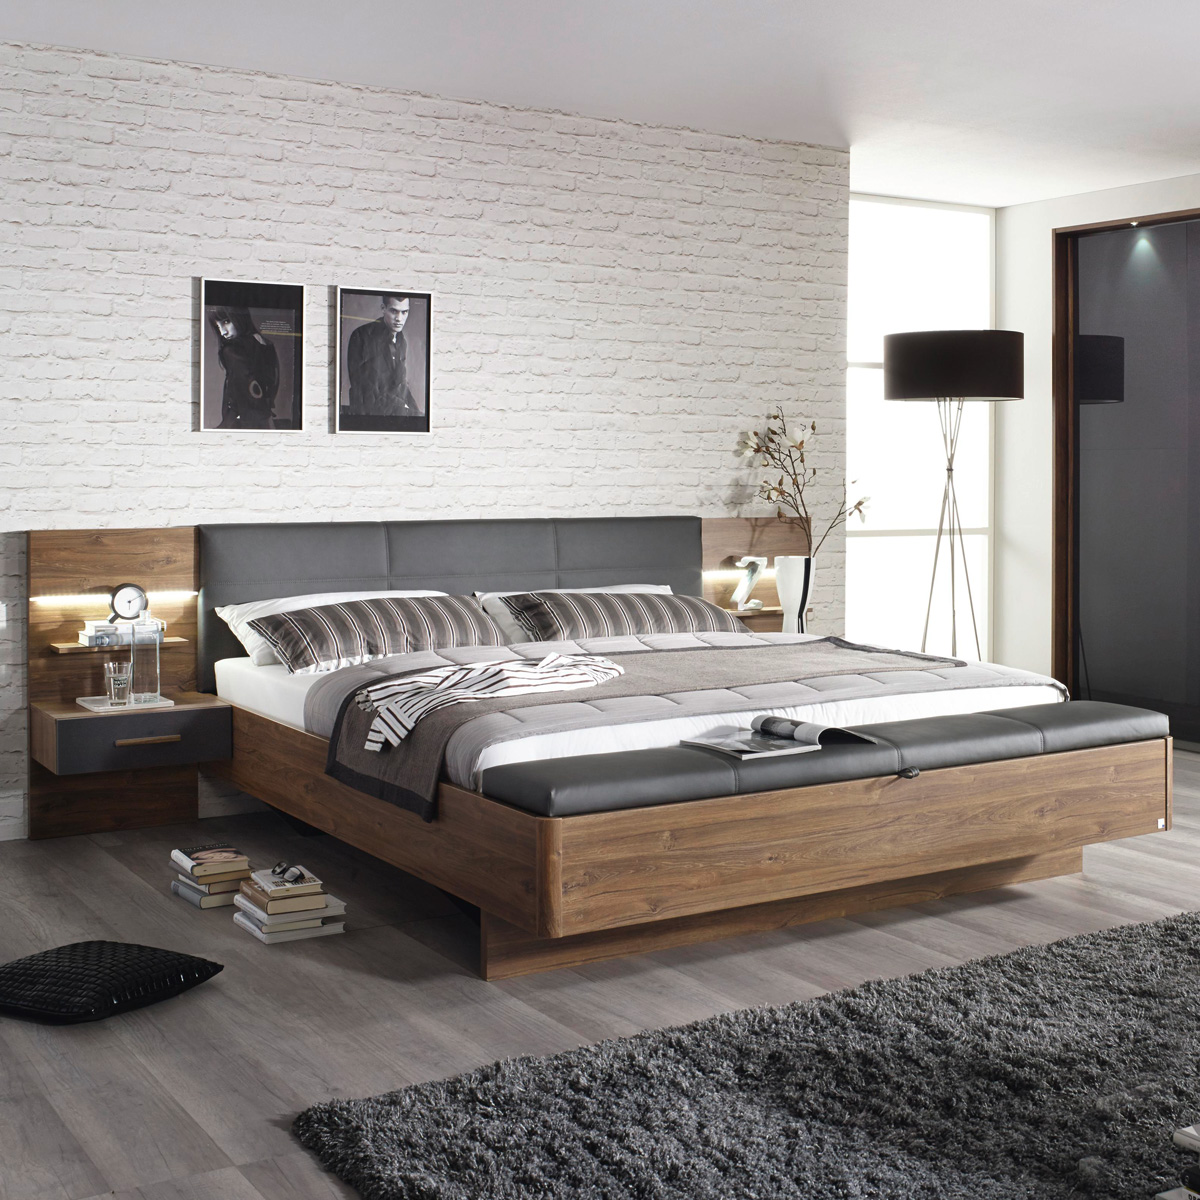 moderner bodenbelag. Black Bedroom Furniture Sets. Home Design Ideas